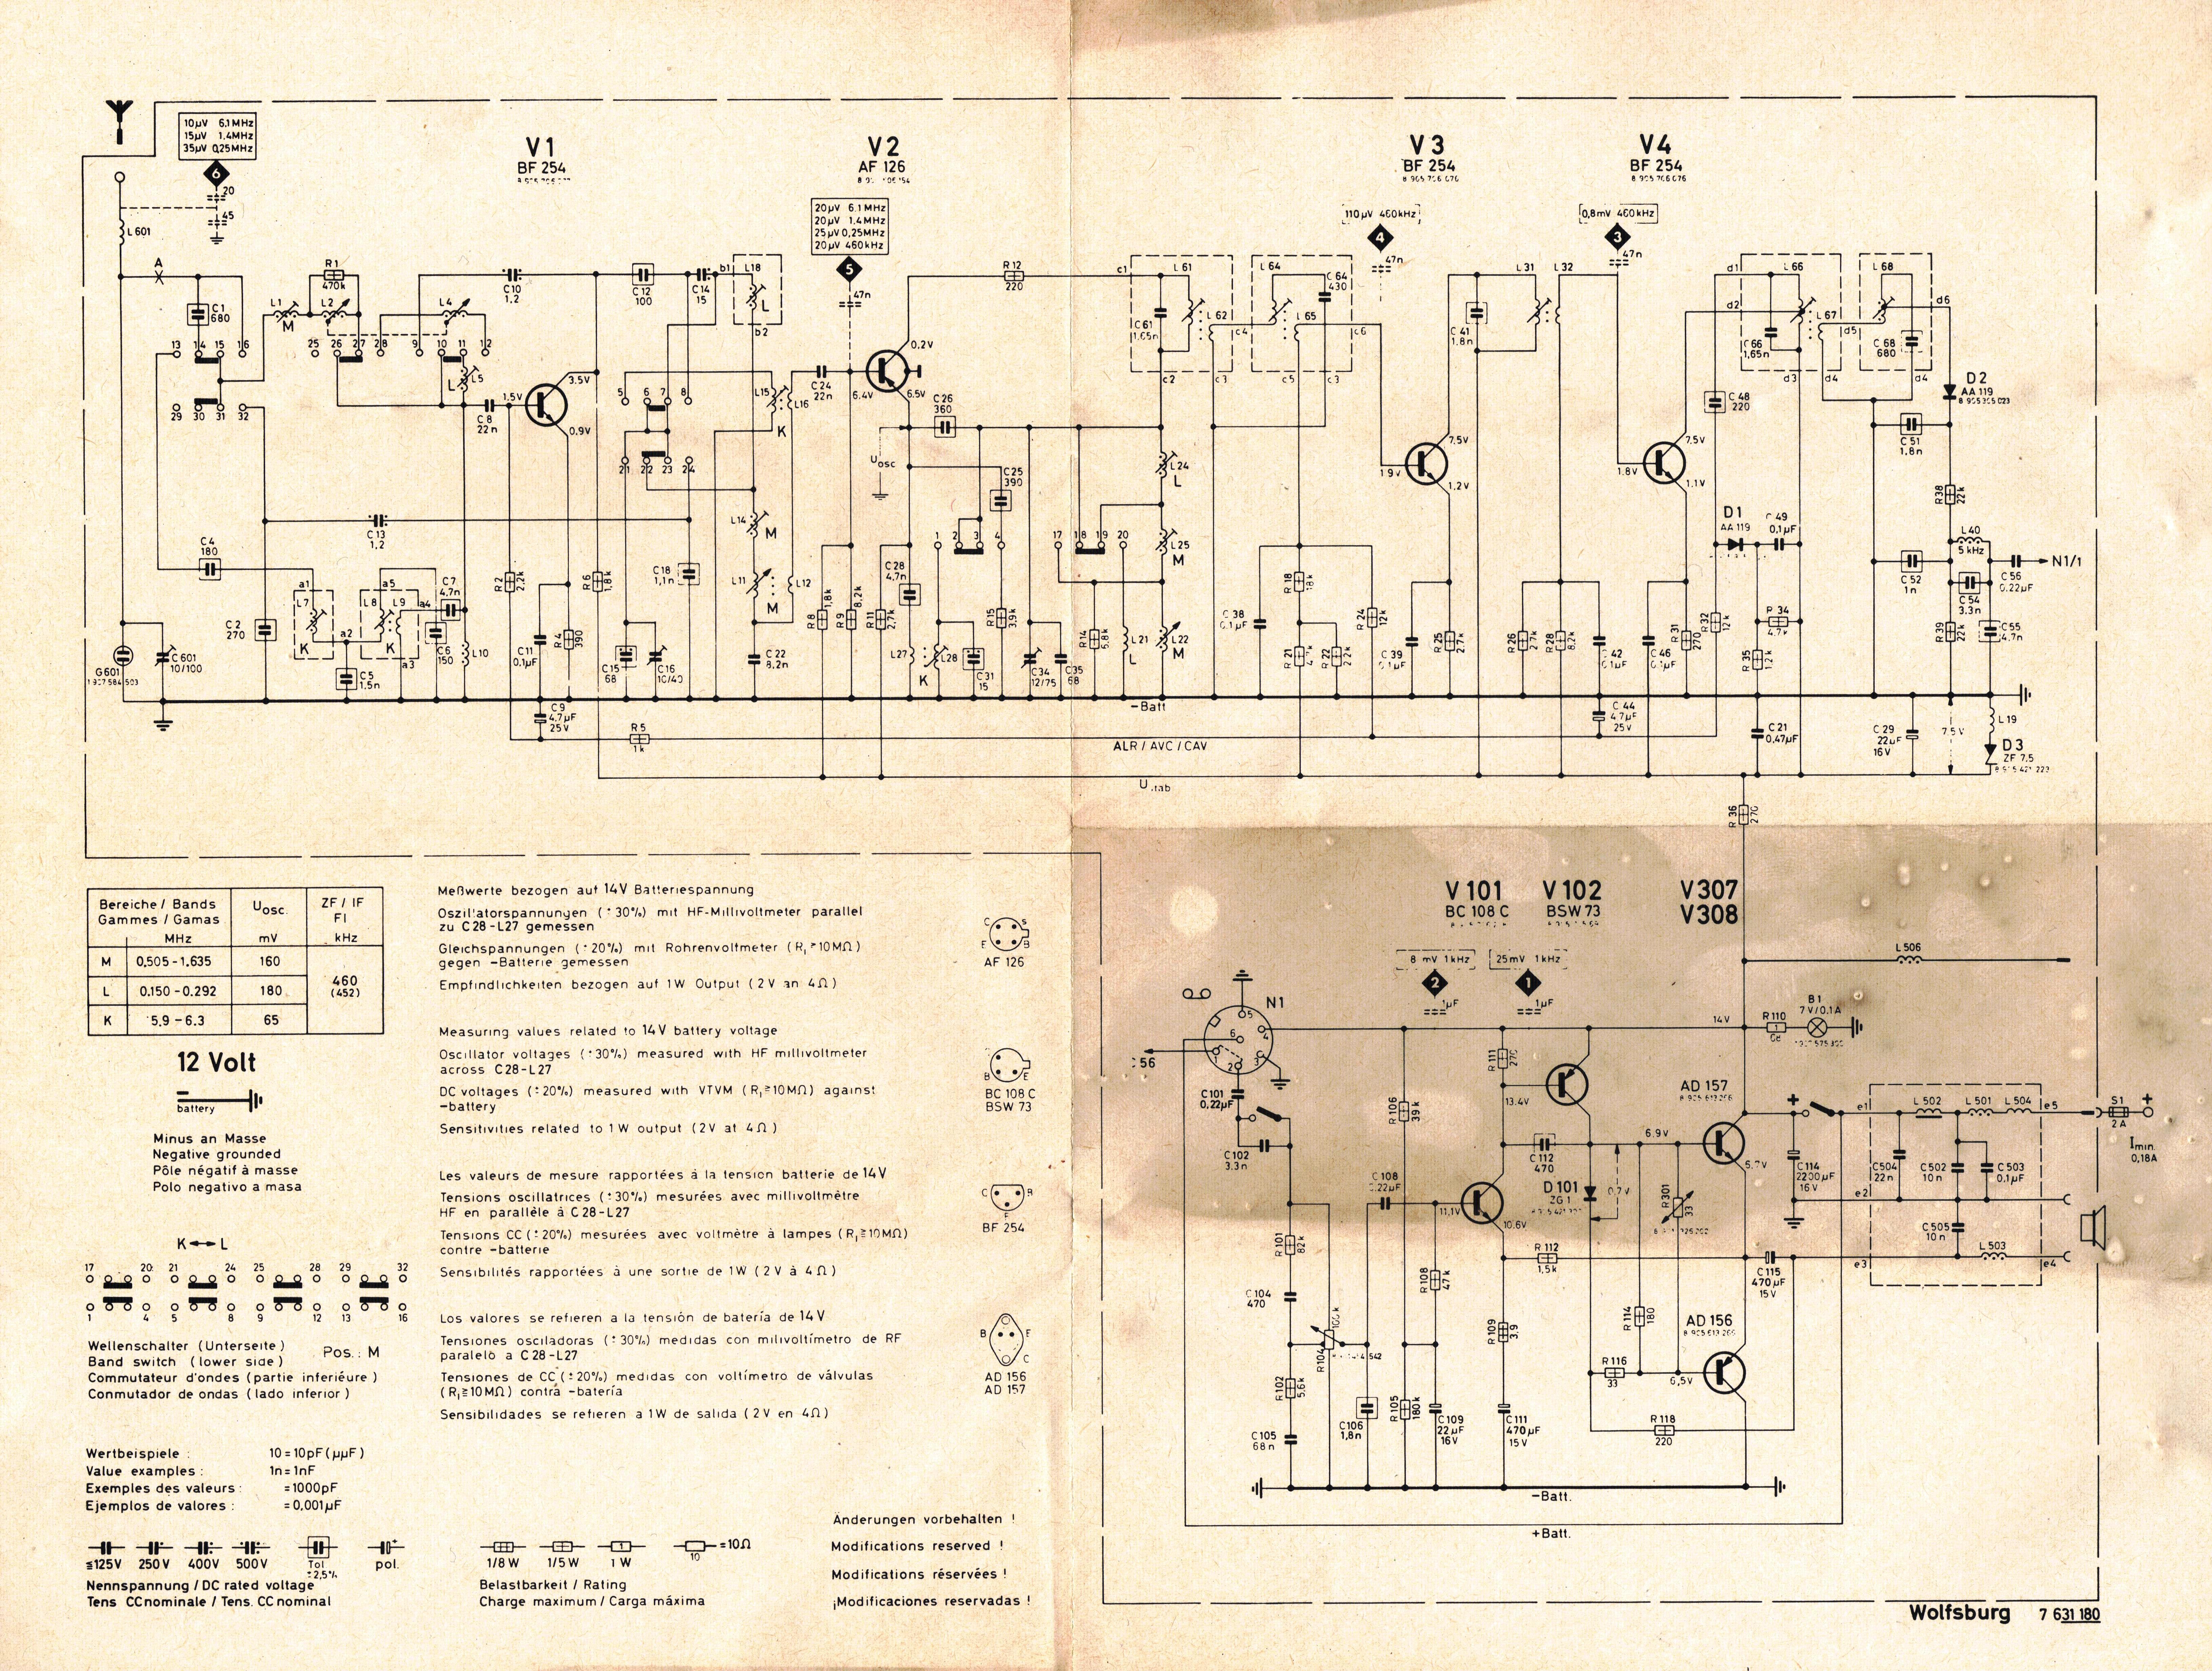 Security Camera Schematics Get Free Image About Wiring Diagram furthermore Vco Schematic Pcb additionally slab   vintage rogers rd likewise Diy Audio Mixer Schematics in addition Vacuum Tube Radio Schematics Z477. on transmitter vacuum tube schematics